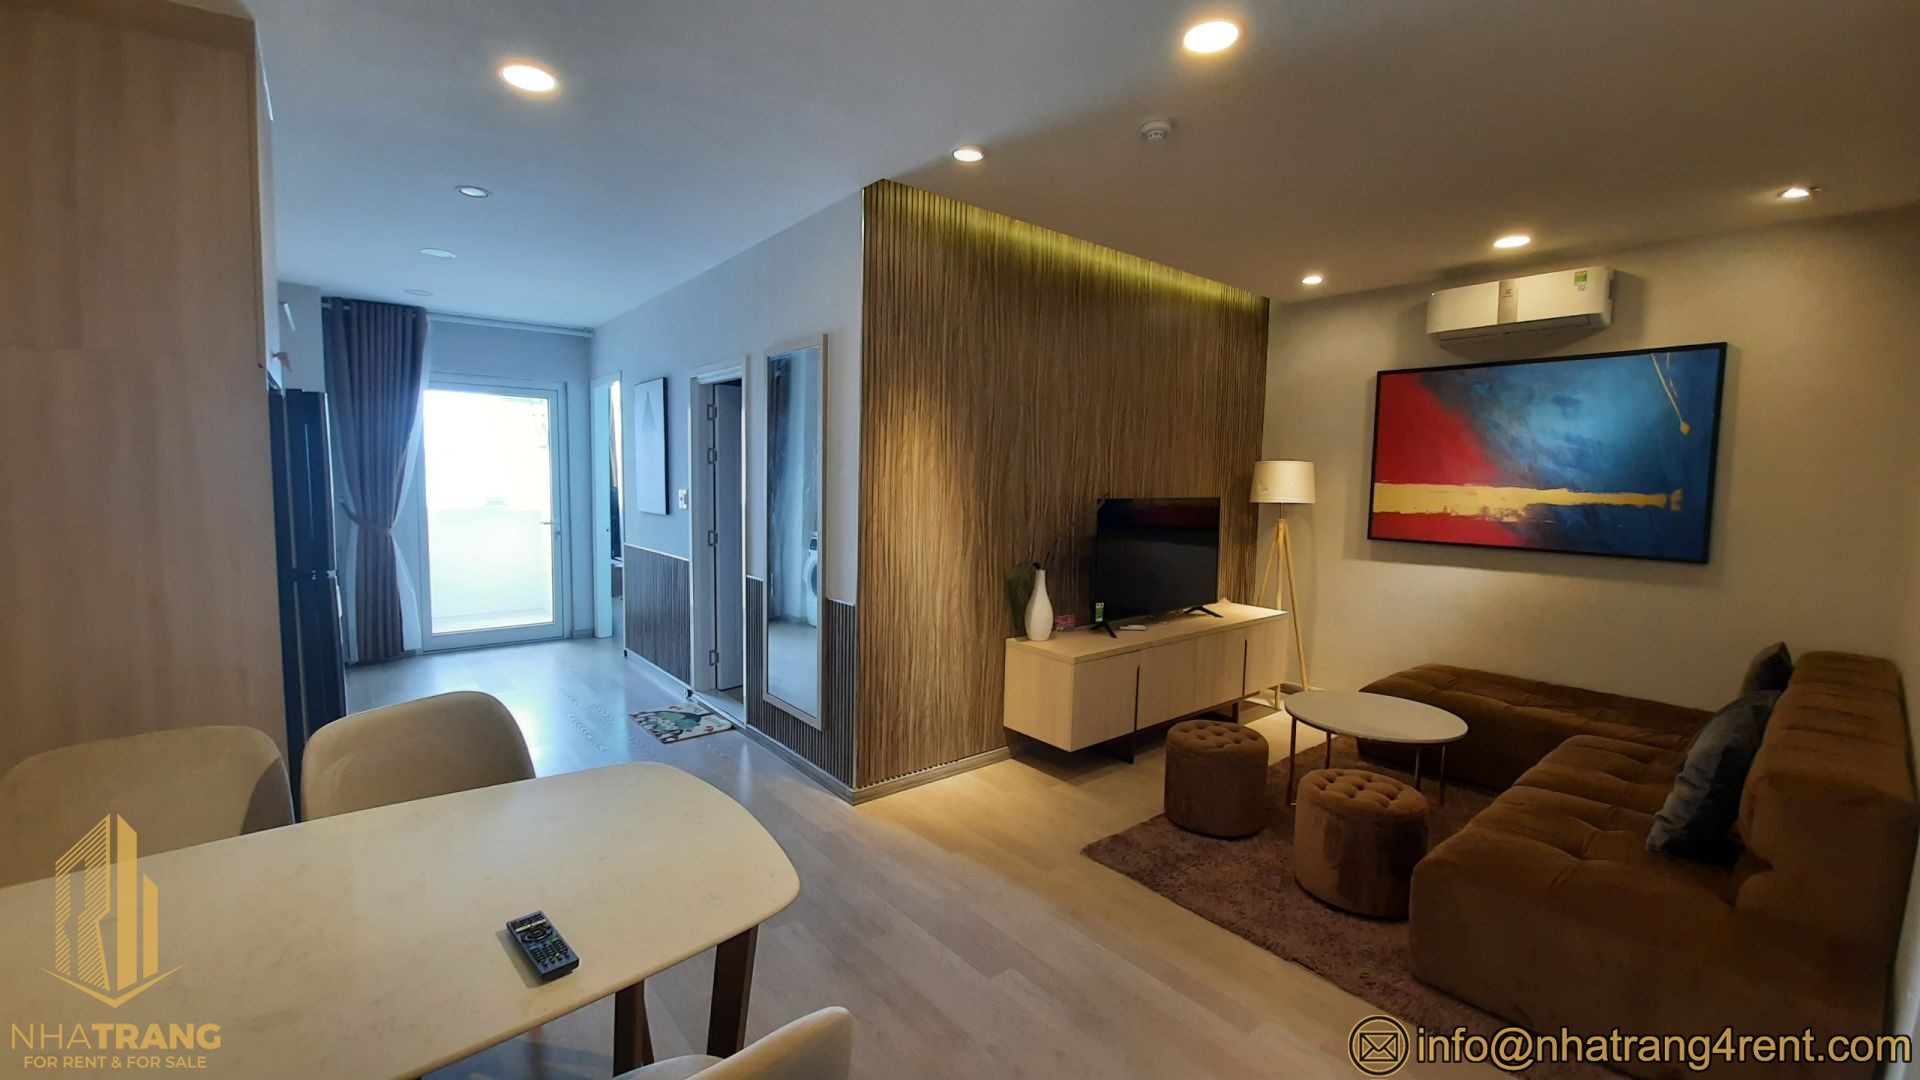 Muong Thanh Khanh Hoa – 2 br apartment for rent near the center A201